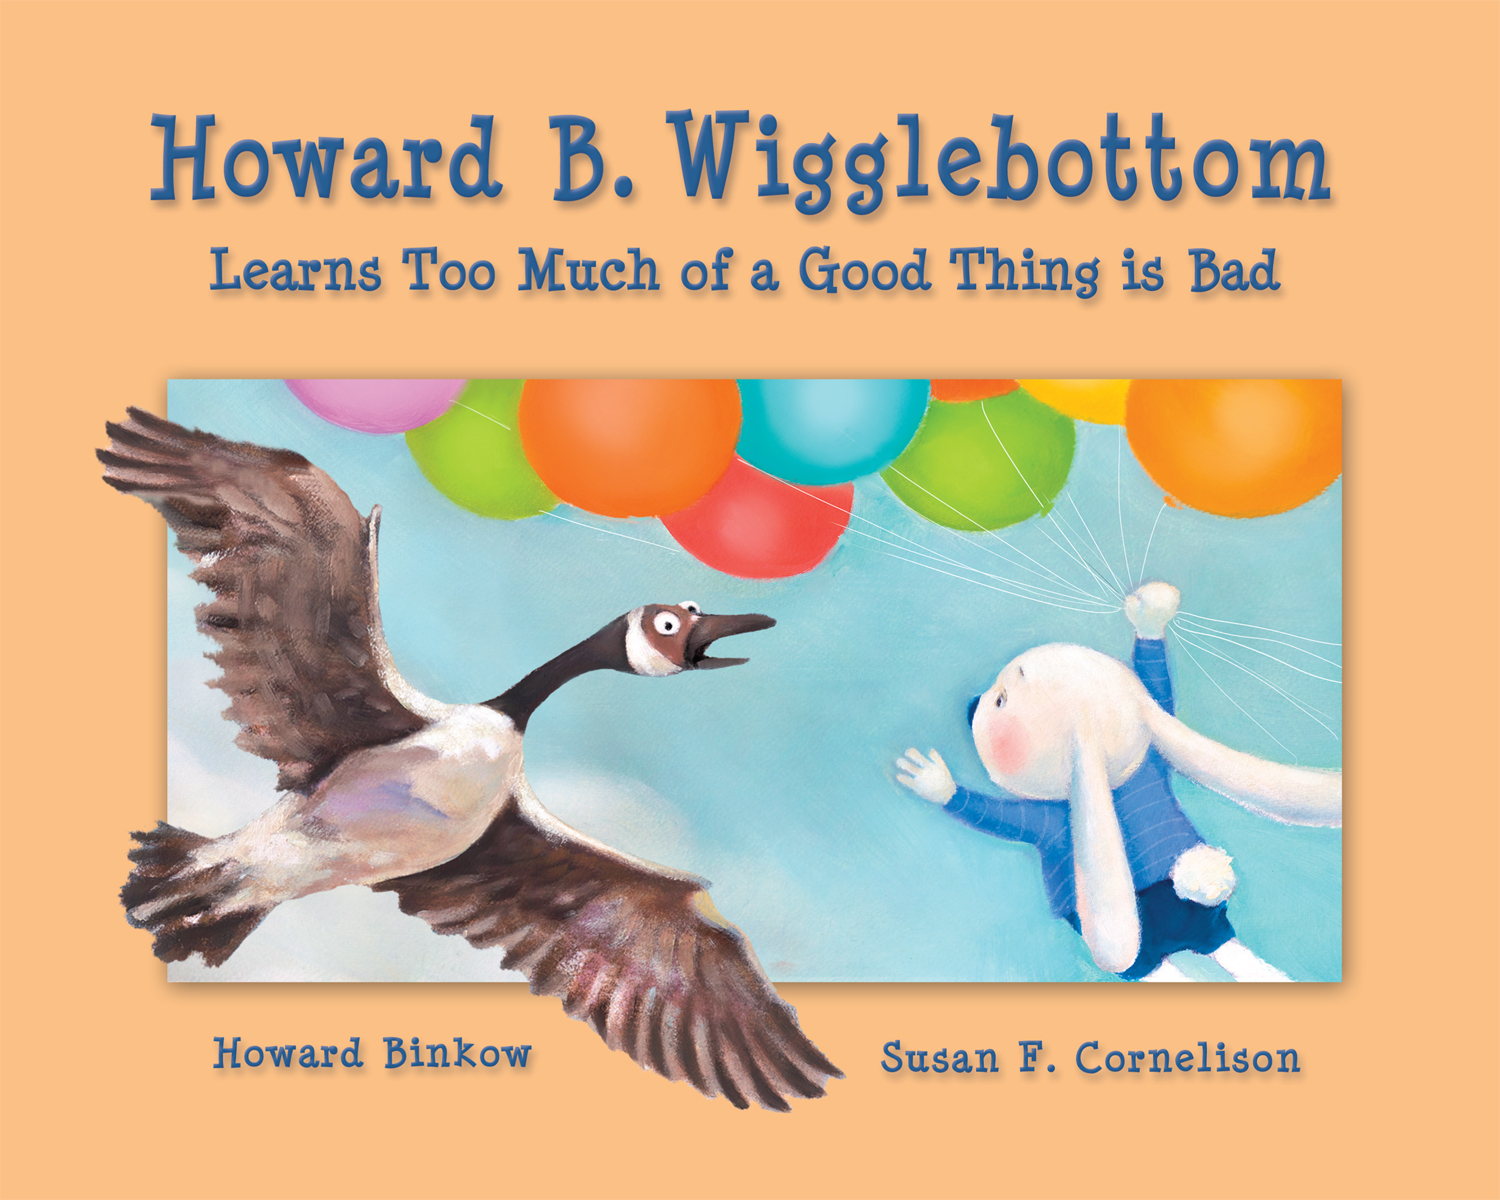 Howard B.Wigglebottom Learns Too Much of A Good Thing is Bad